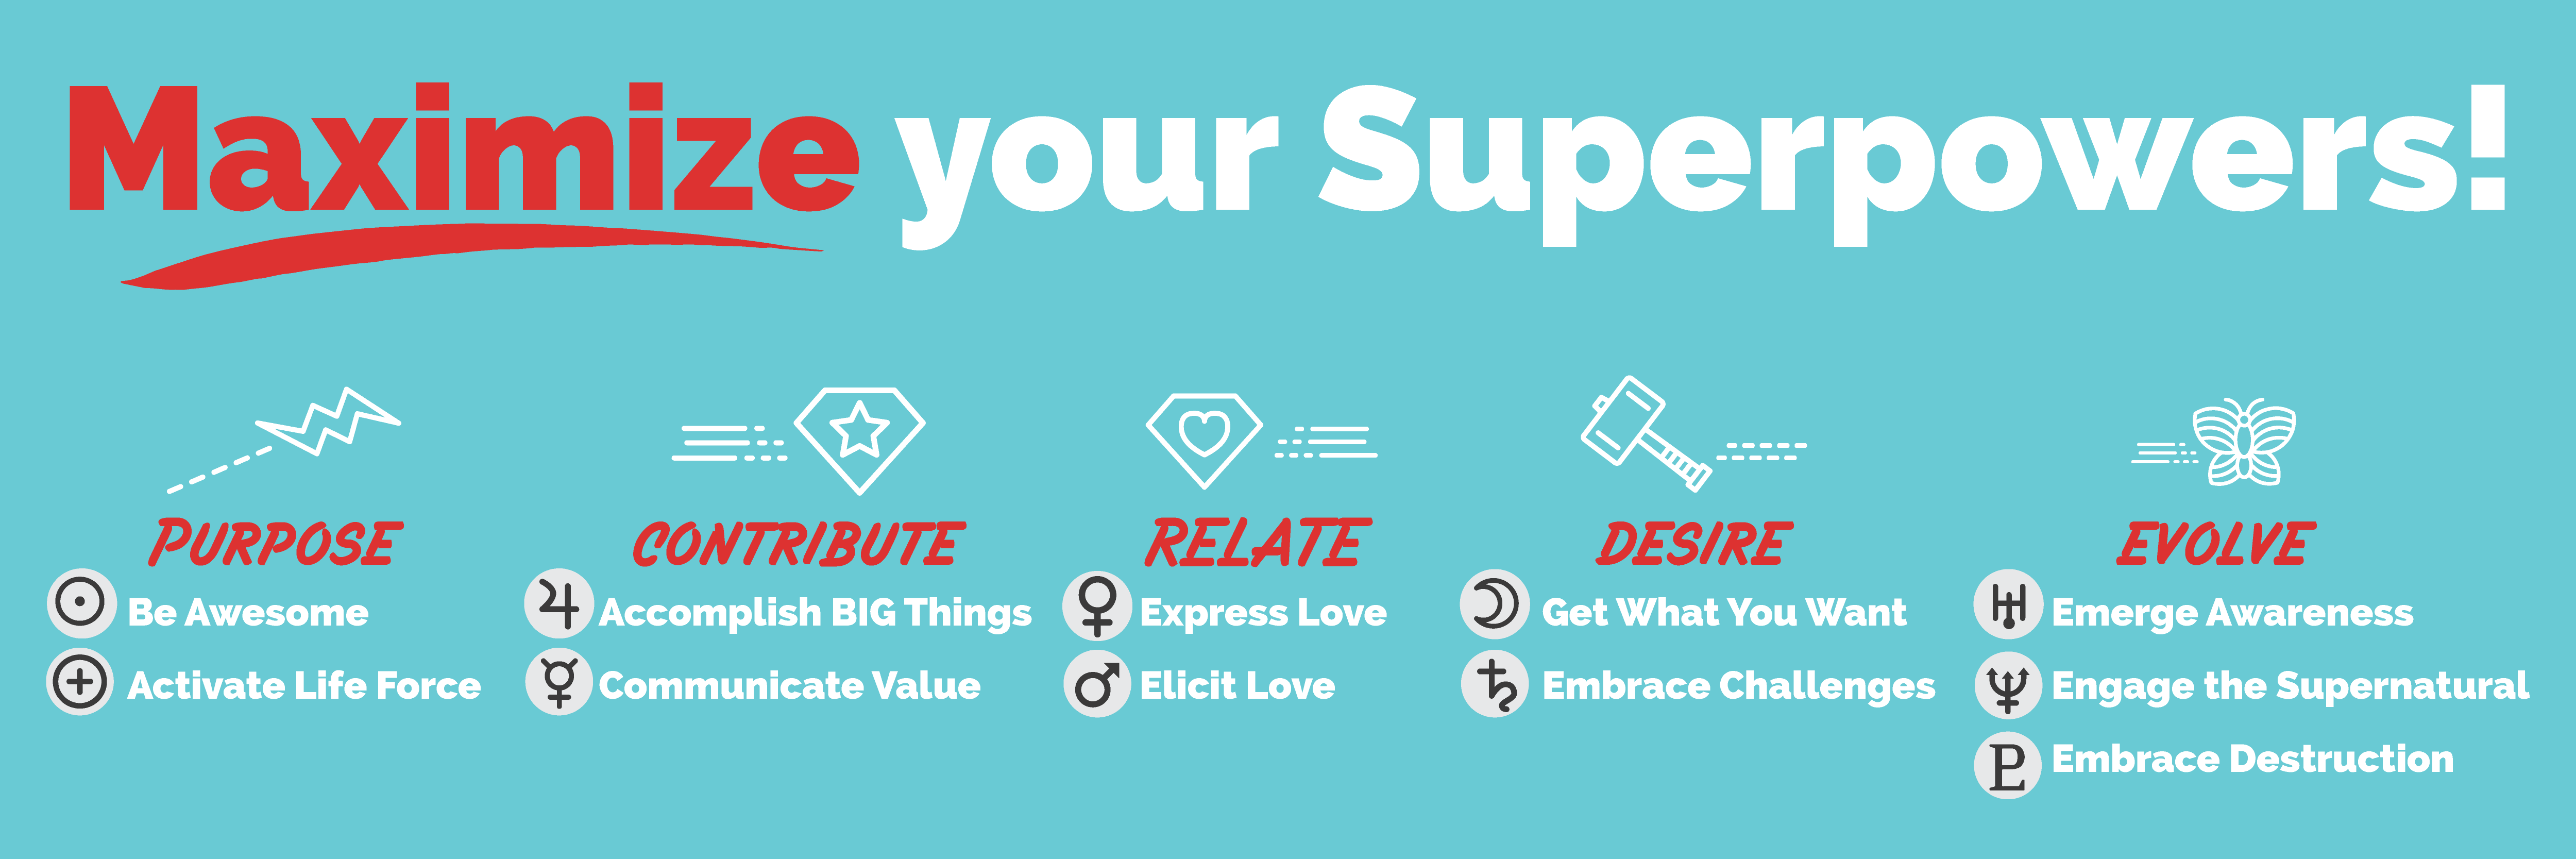 Maximize Your Superpowers